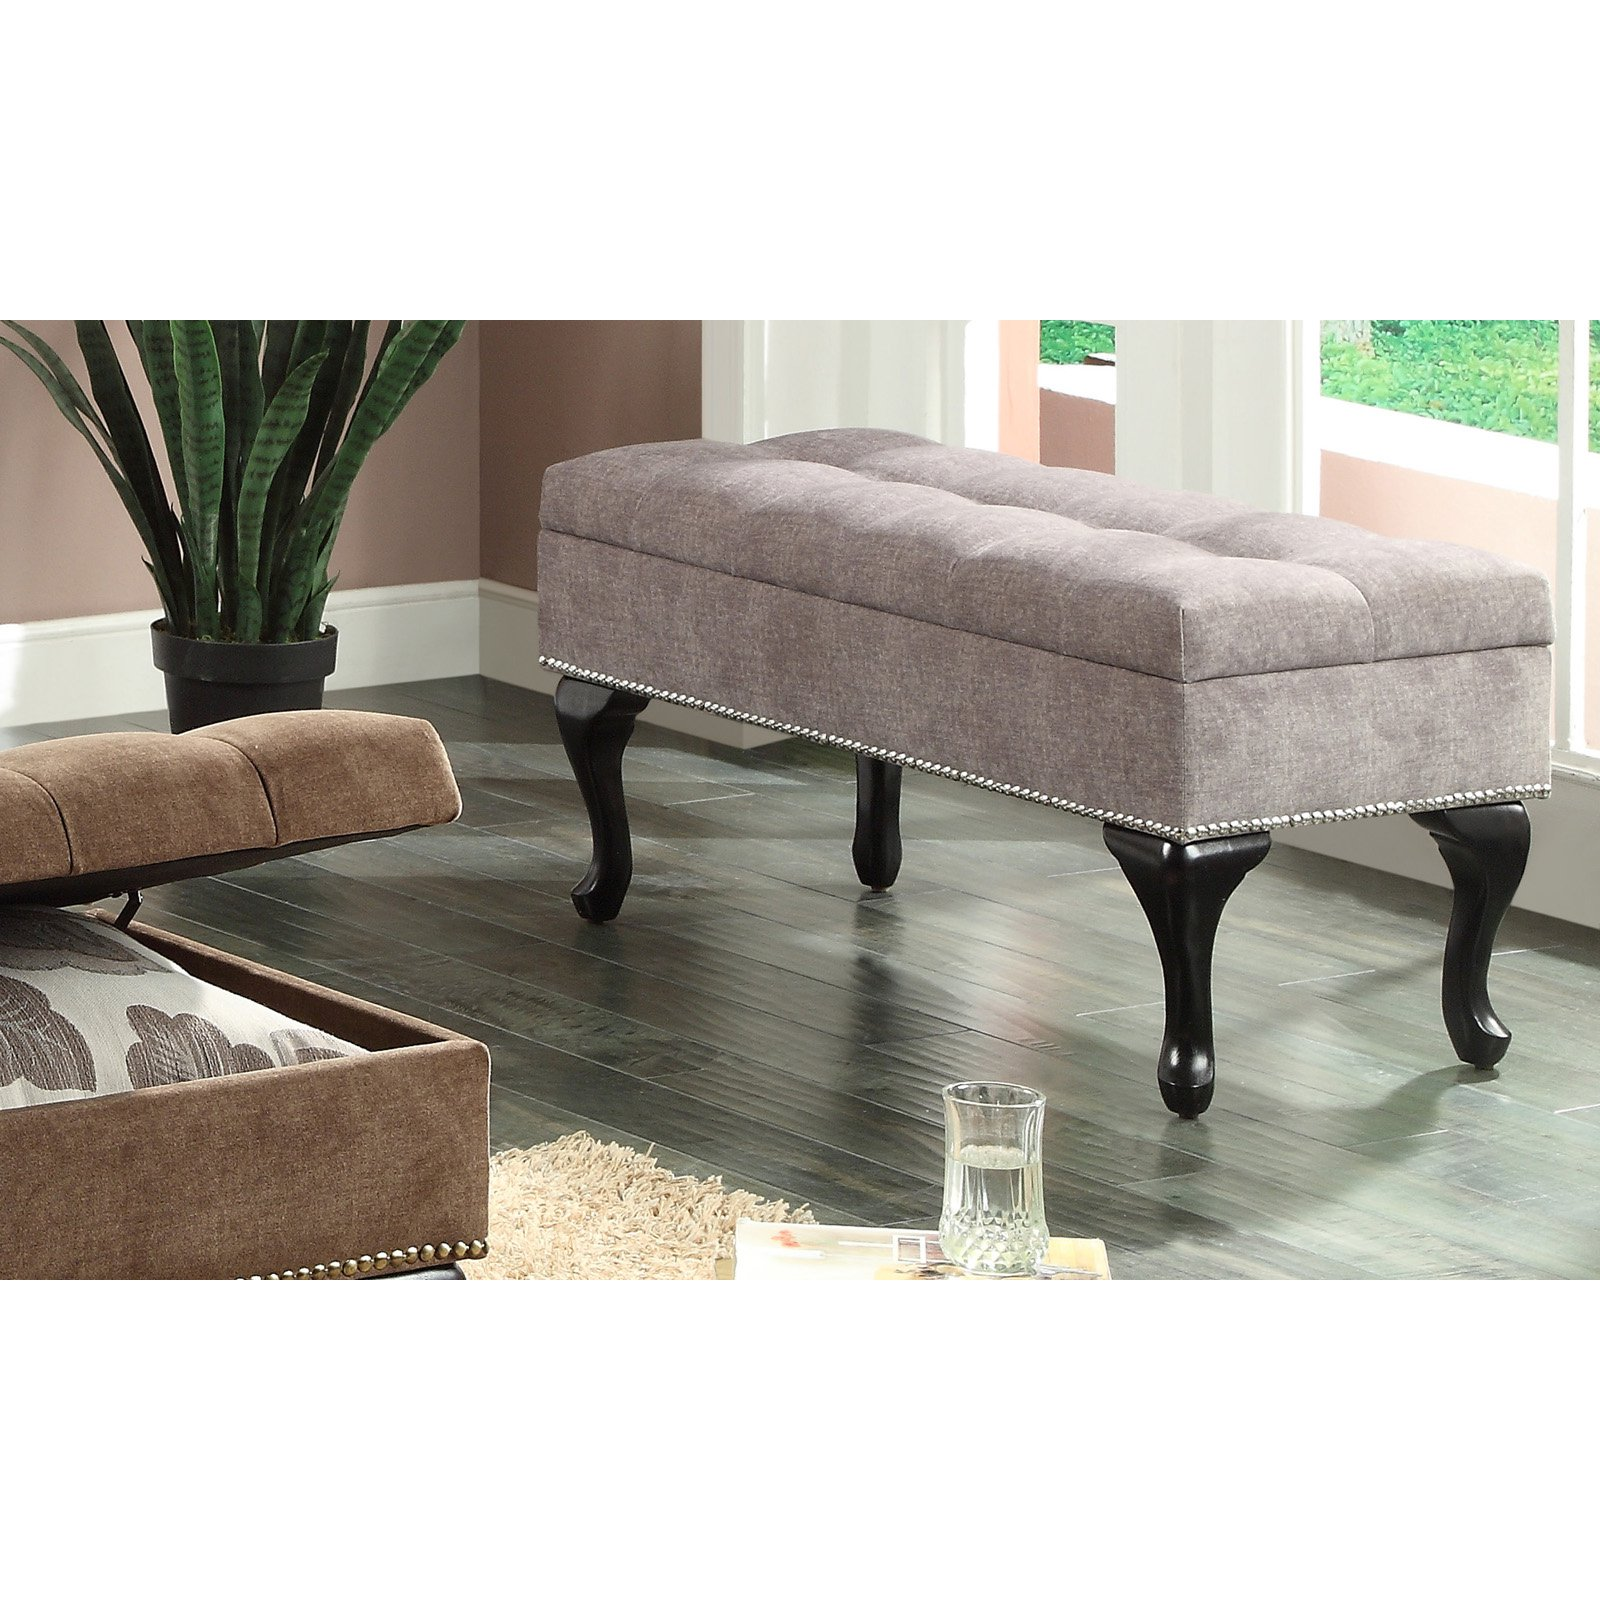 Attractive Fabric Storage Bench With Stud Detail, Grey